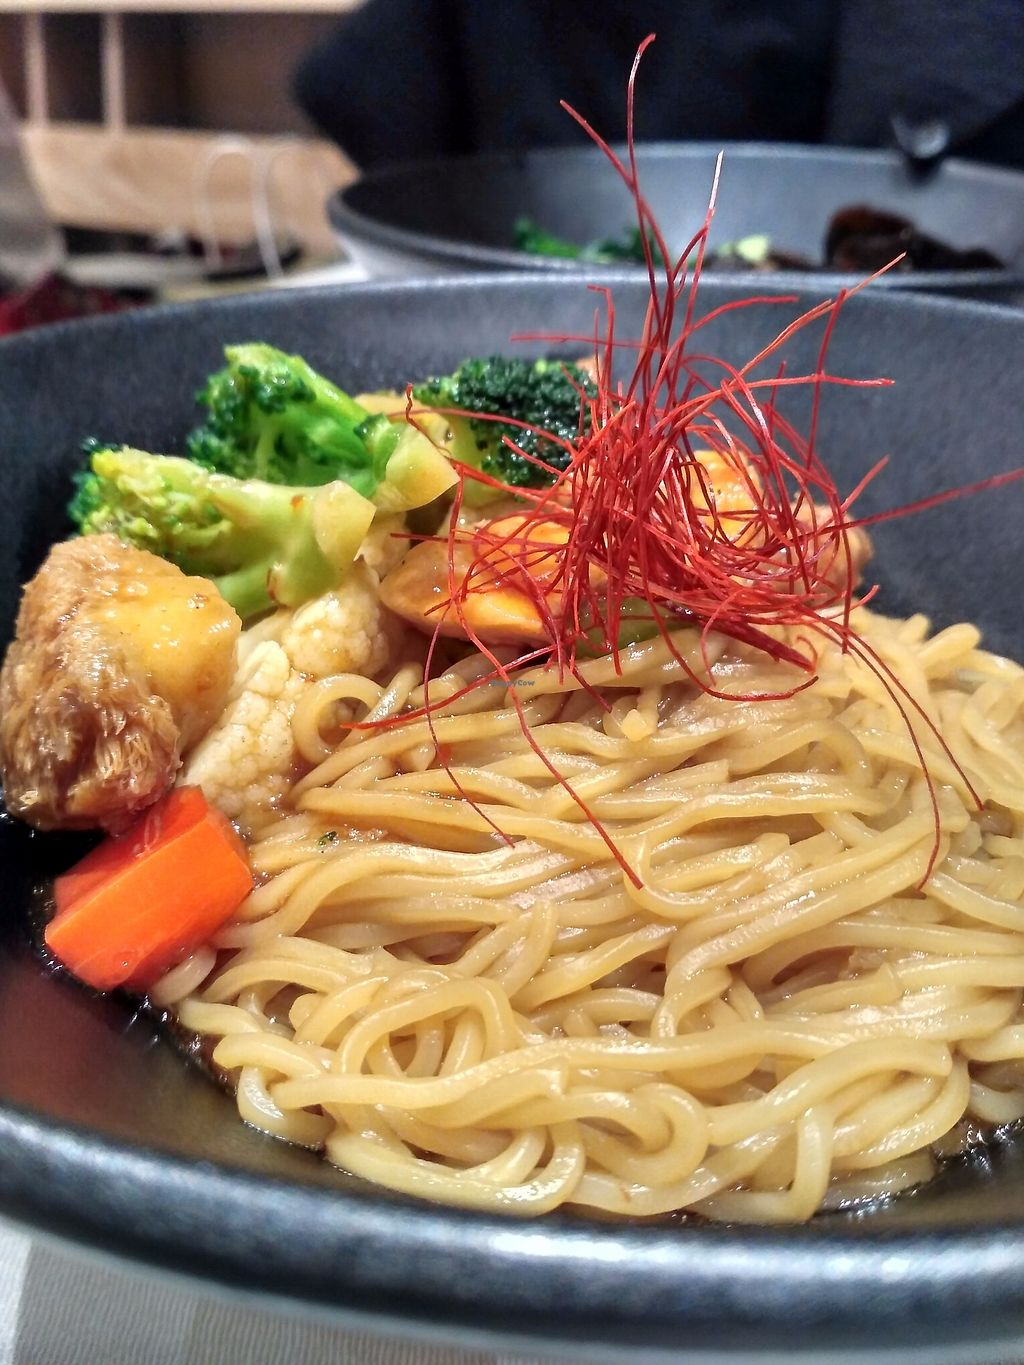 """Photo of Grove - Paya Lebar  by <a href=""""/members/profile/Peace%20..."""">Peace ...</a> <br/>Dry Kung Pao Noodle <br/> November 18, 2017  - <a href='/contact/abuse/image/104163/326651'>Report</a>"""